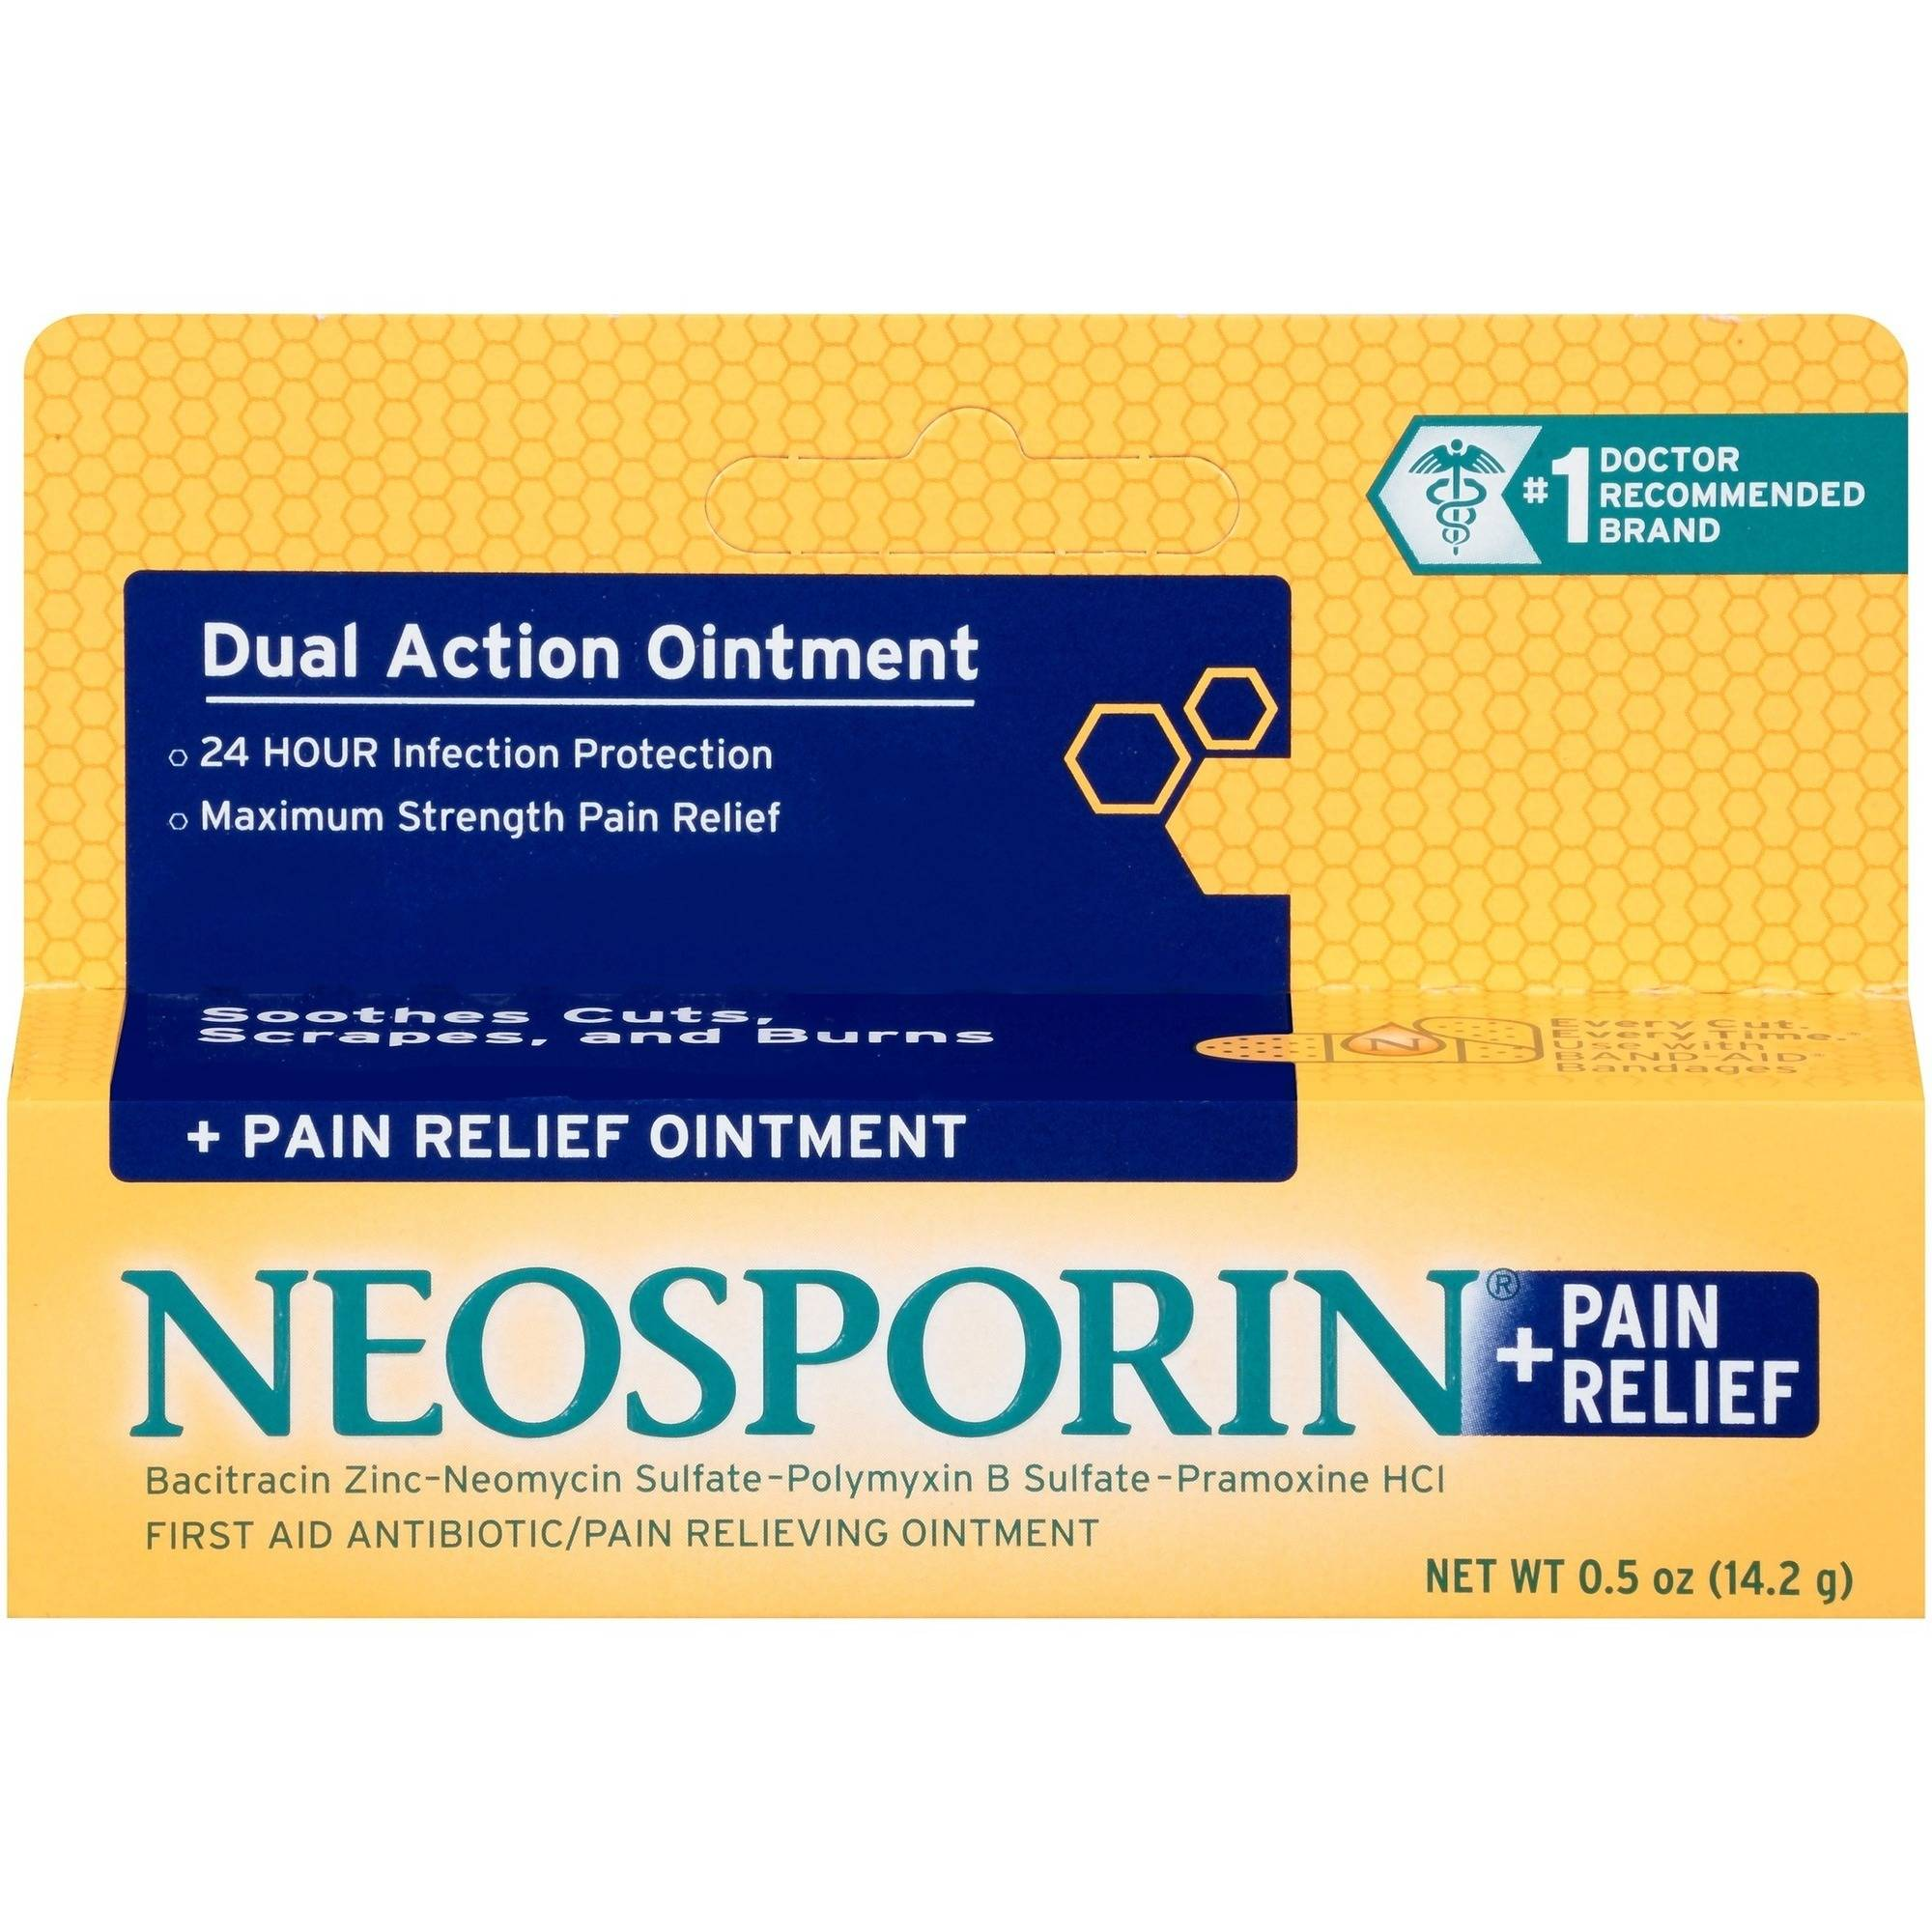 Neosporin Plus Pain Relief First Aid Antibiotic Ointment, 0.5 oz